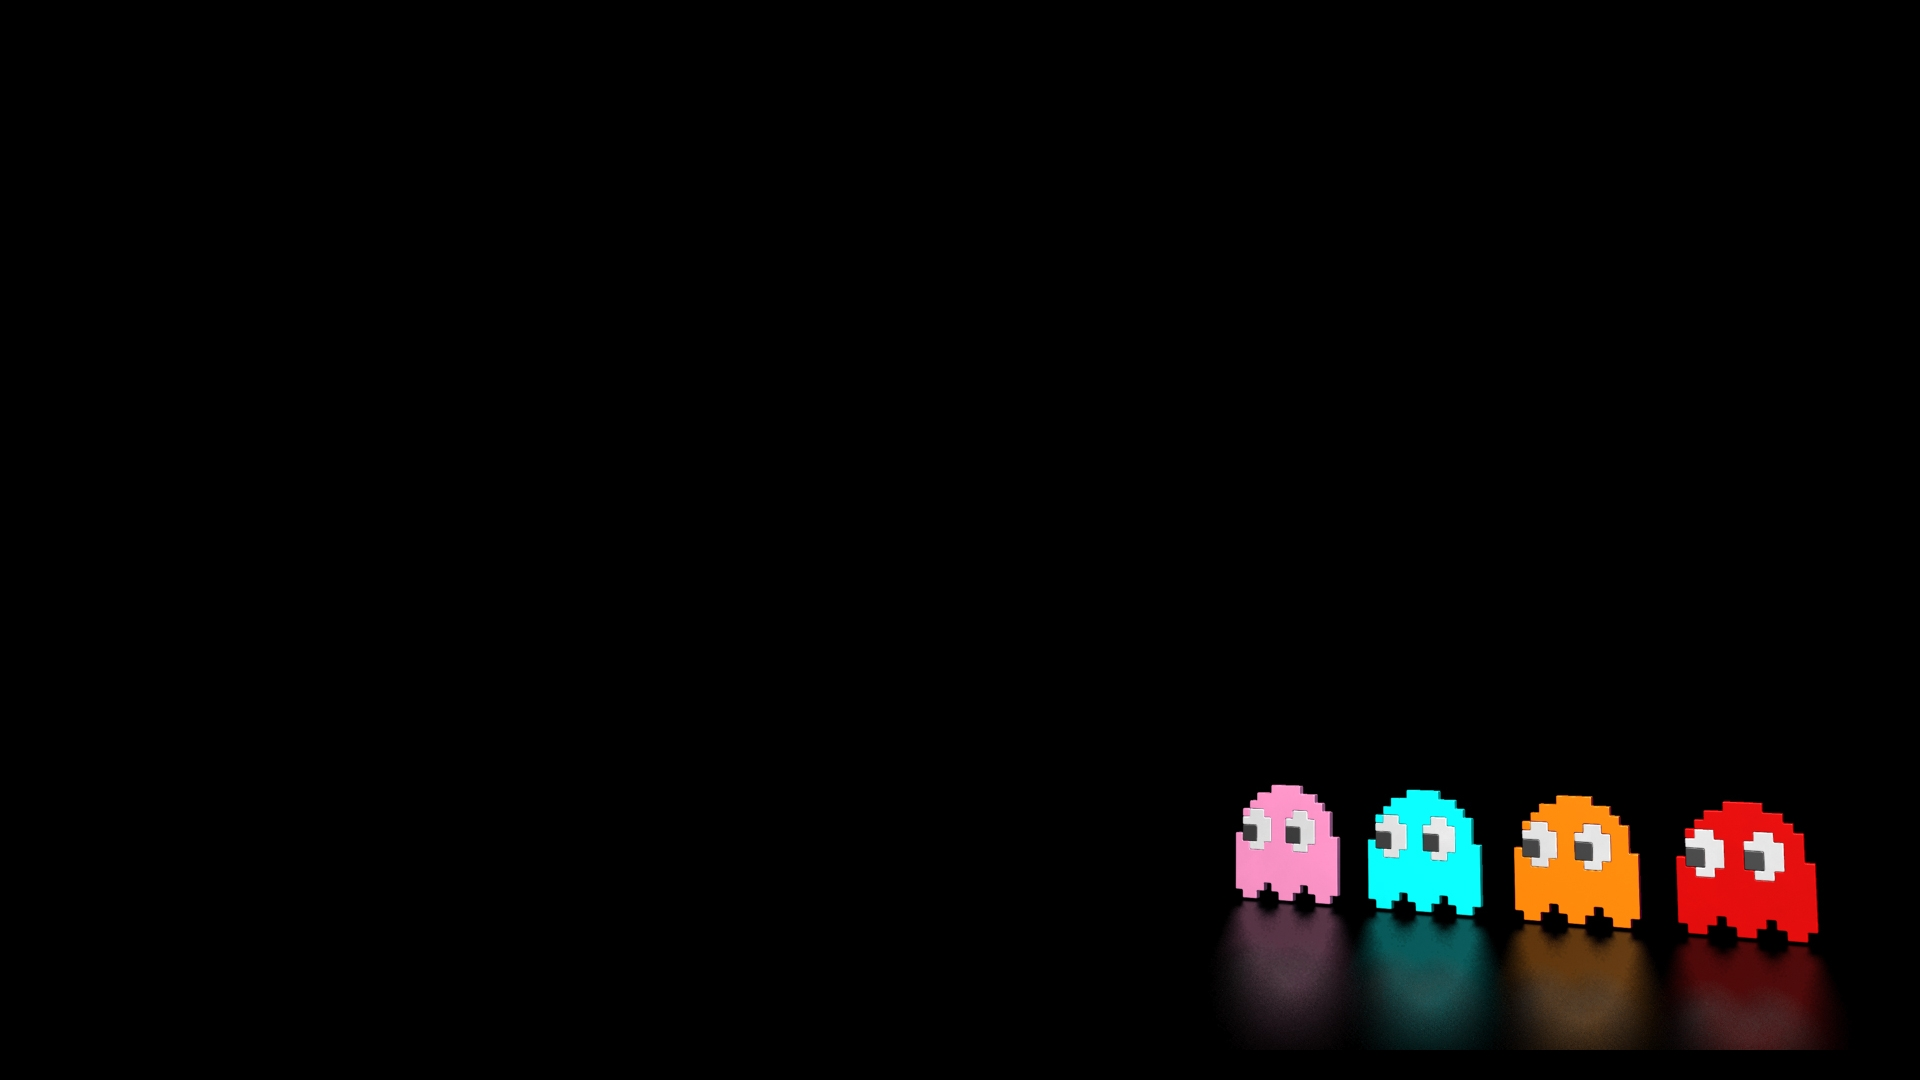 8bit Pacman Wallpapers 8bit Pacman HD Wallpapers 8bit 1920x1080